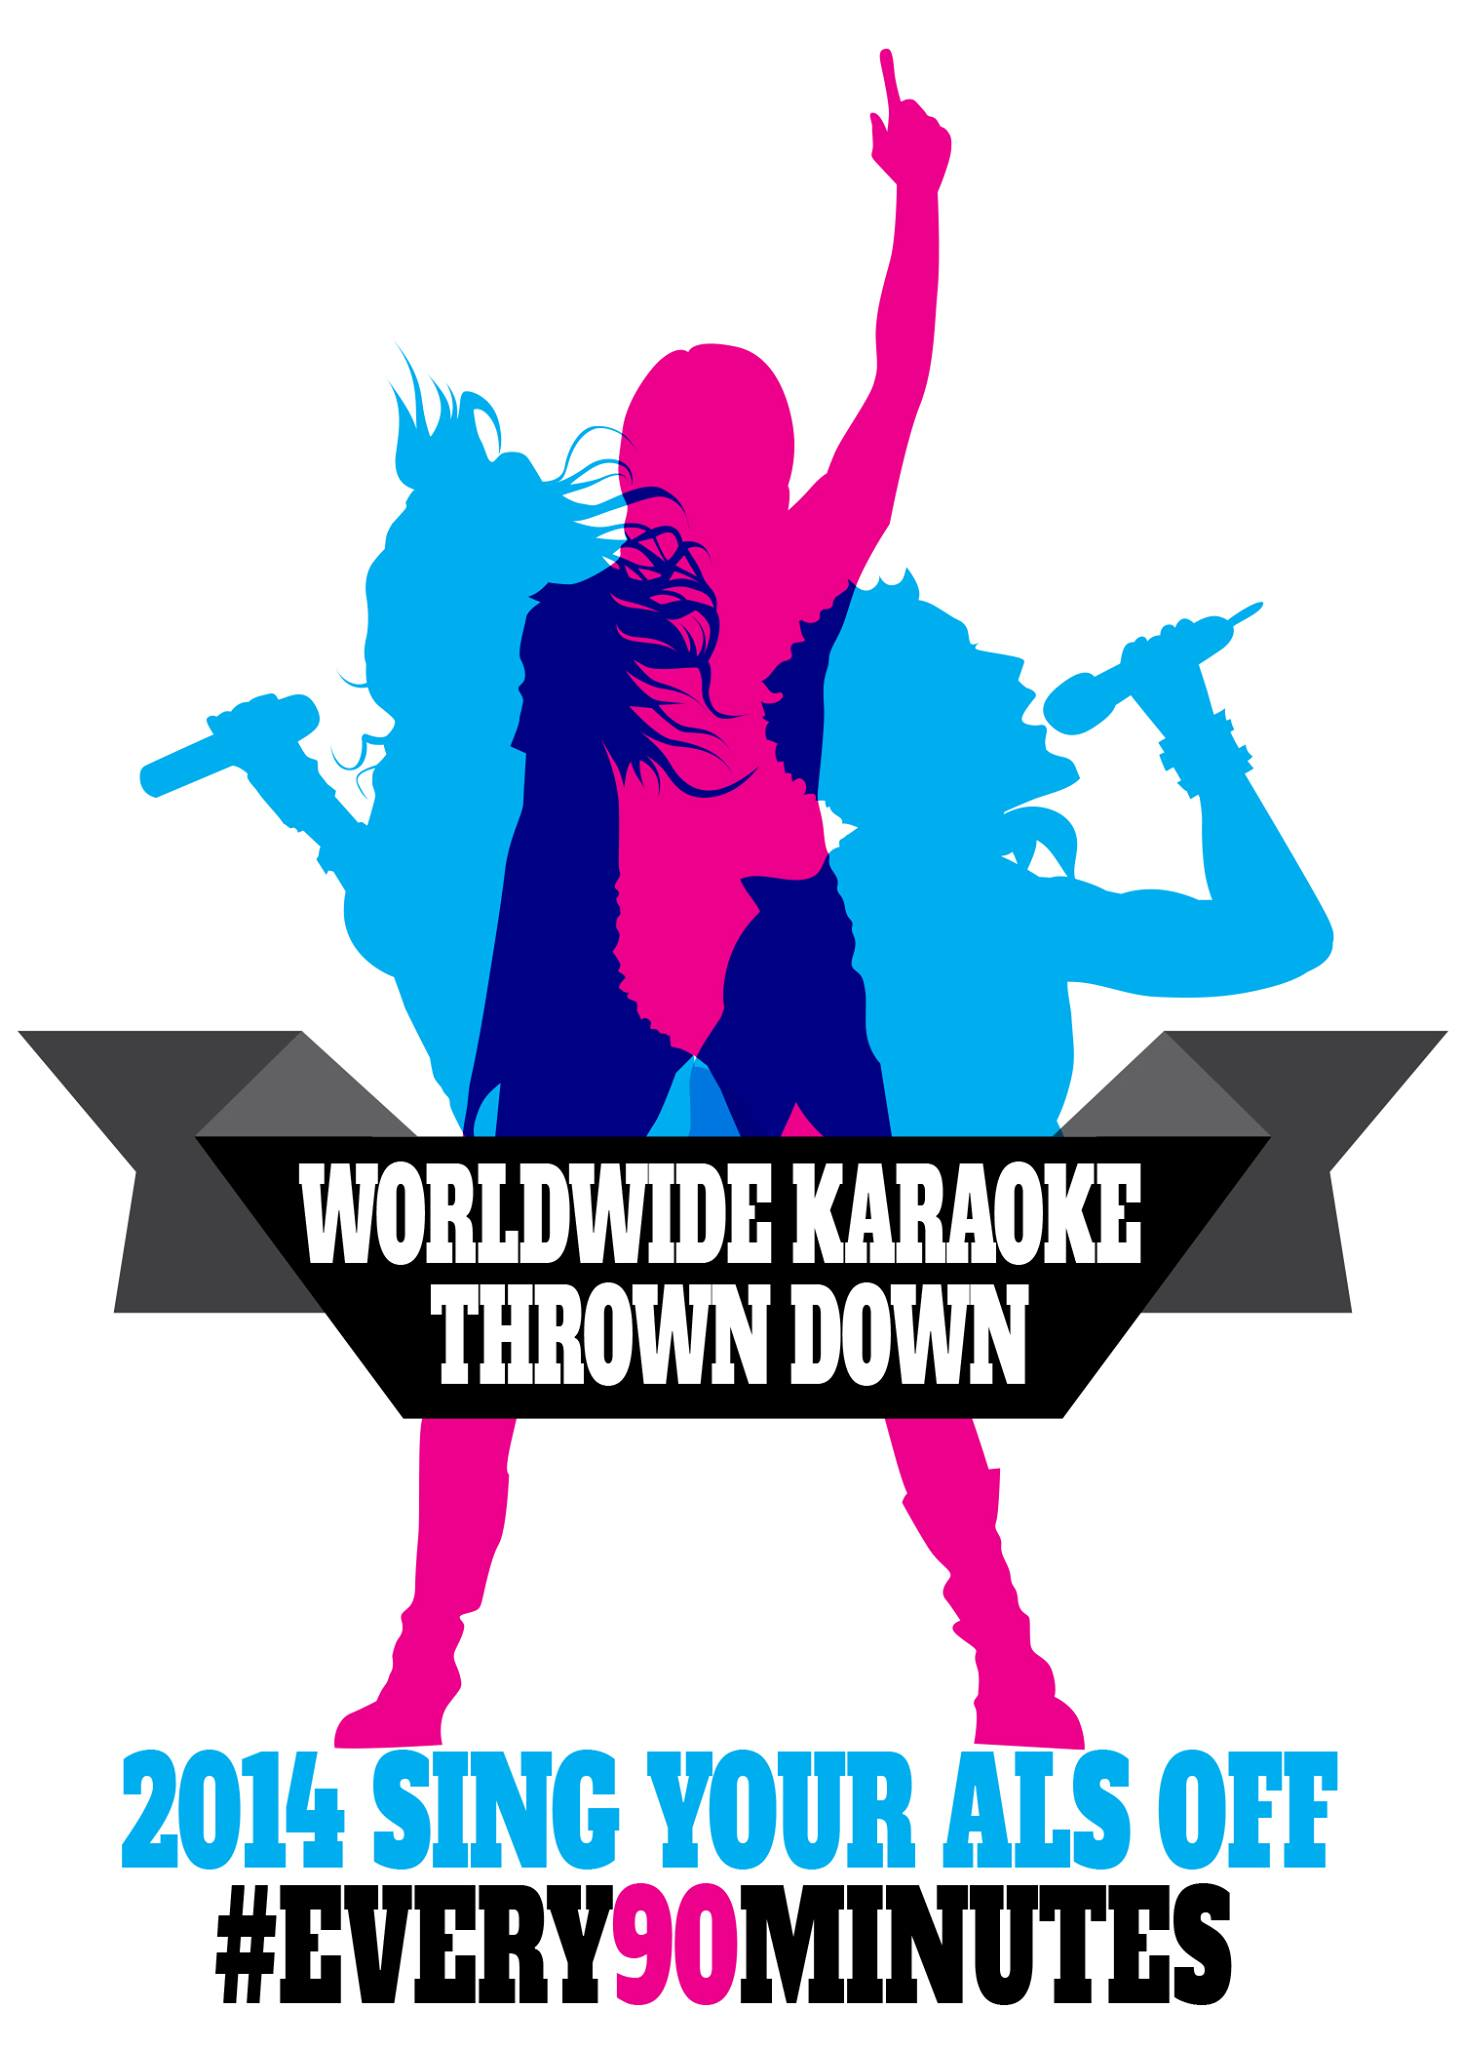 Worldwide Karaoke Throw Down